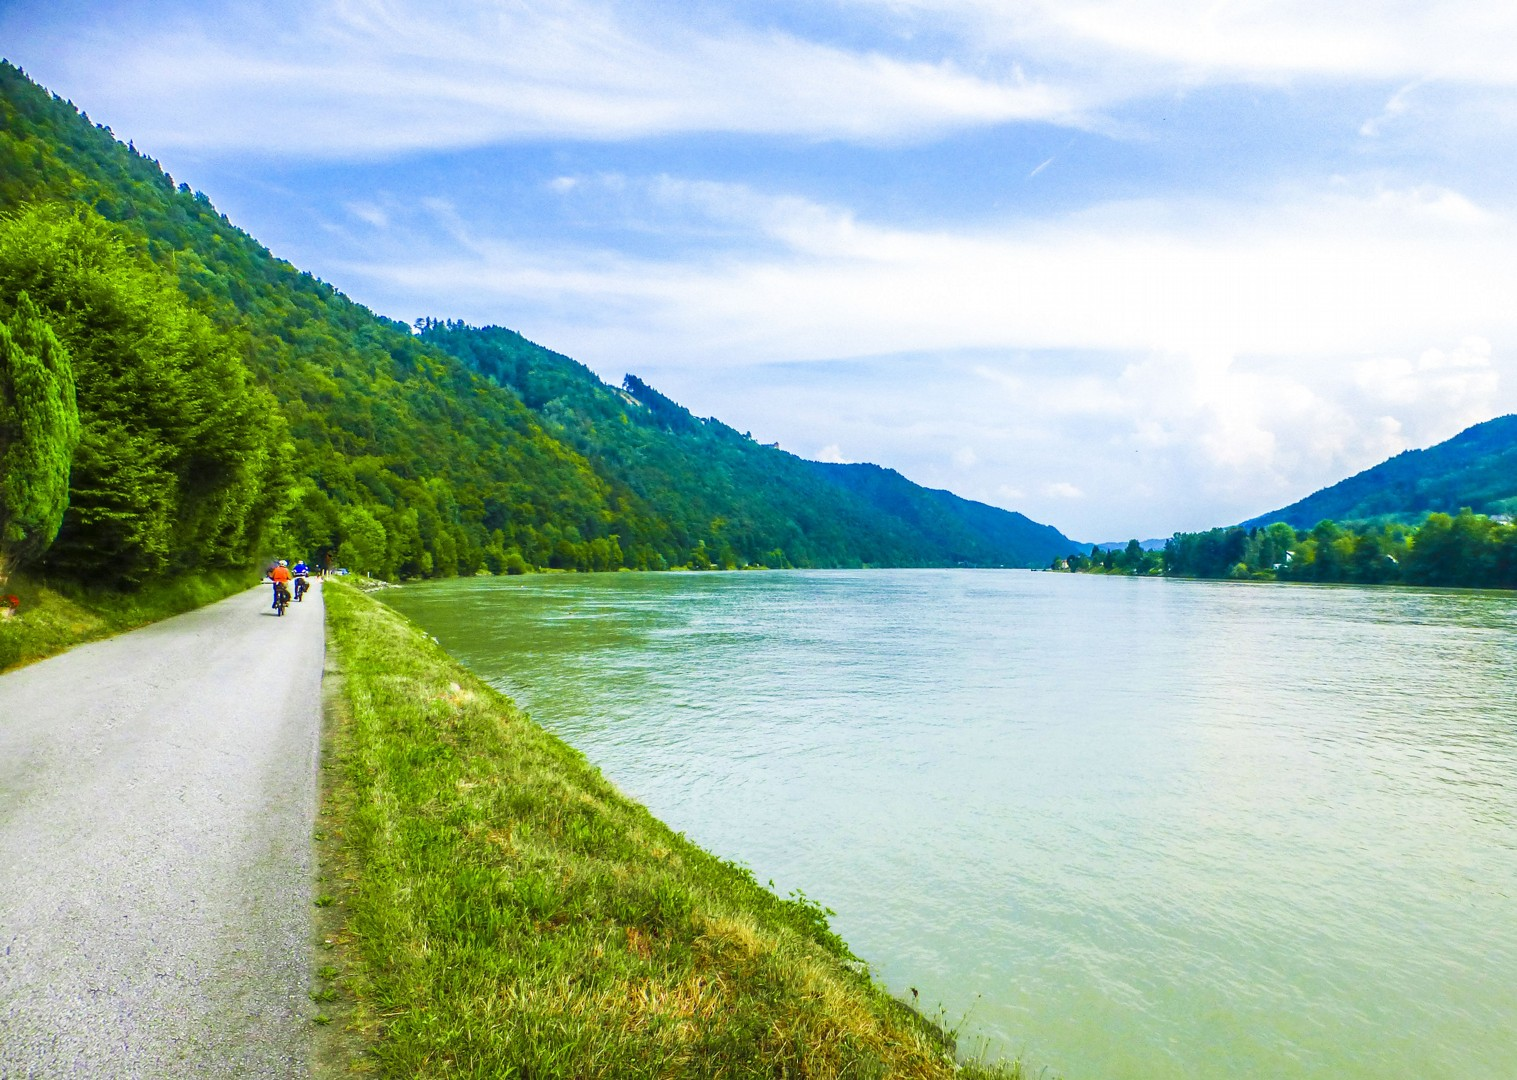 cycle-the-danube-beautiful-scenery-river-germany-austria.jpg - Germany and Austria - The Danube Cyclepath (8 Days) - Self-Guided Leisure Cycling Holiday - Leisure Cycling